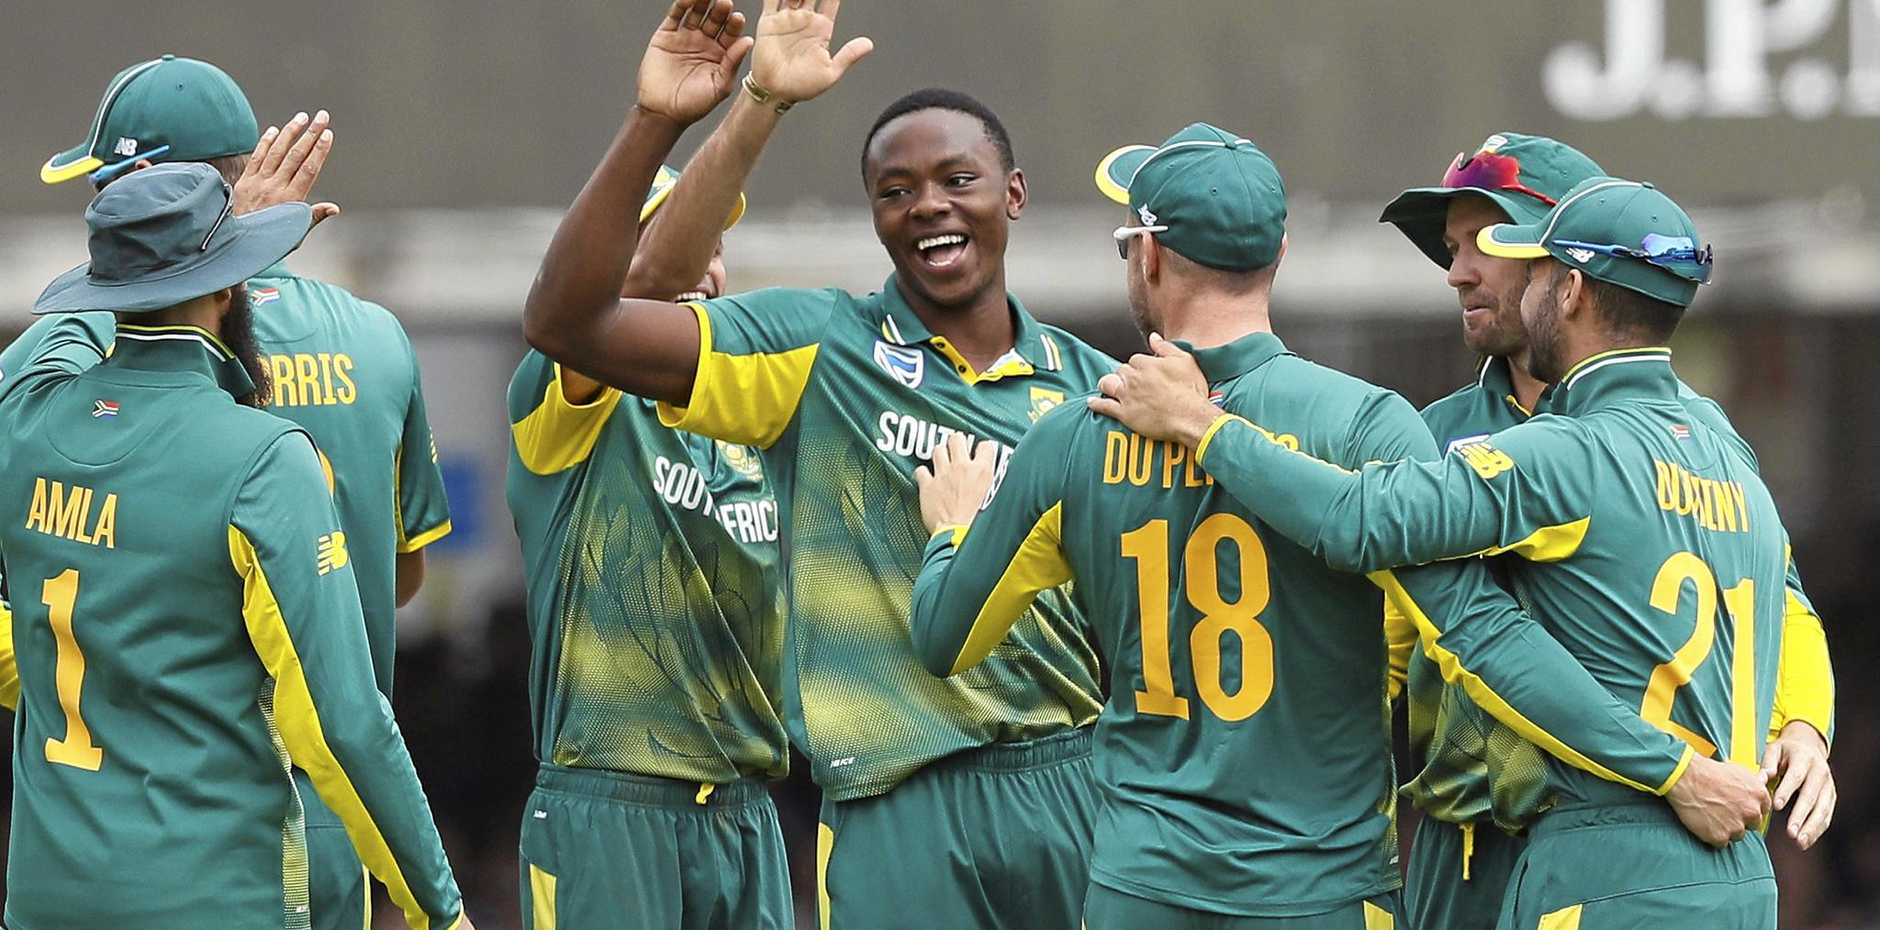 Kagiso Rabada, centre, celebrates taking the wicket of England's Adil Rashid during the third One Day International at Lord's.